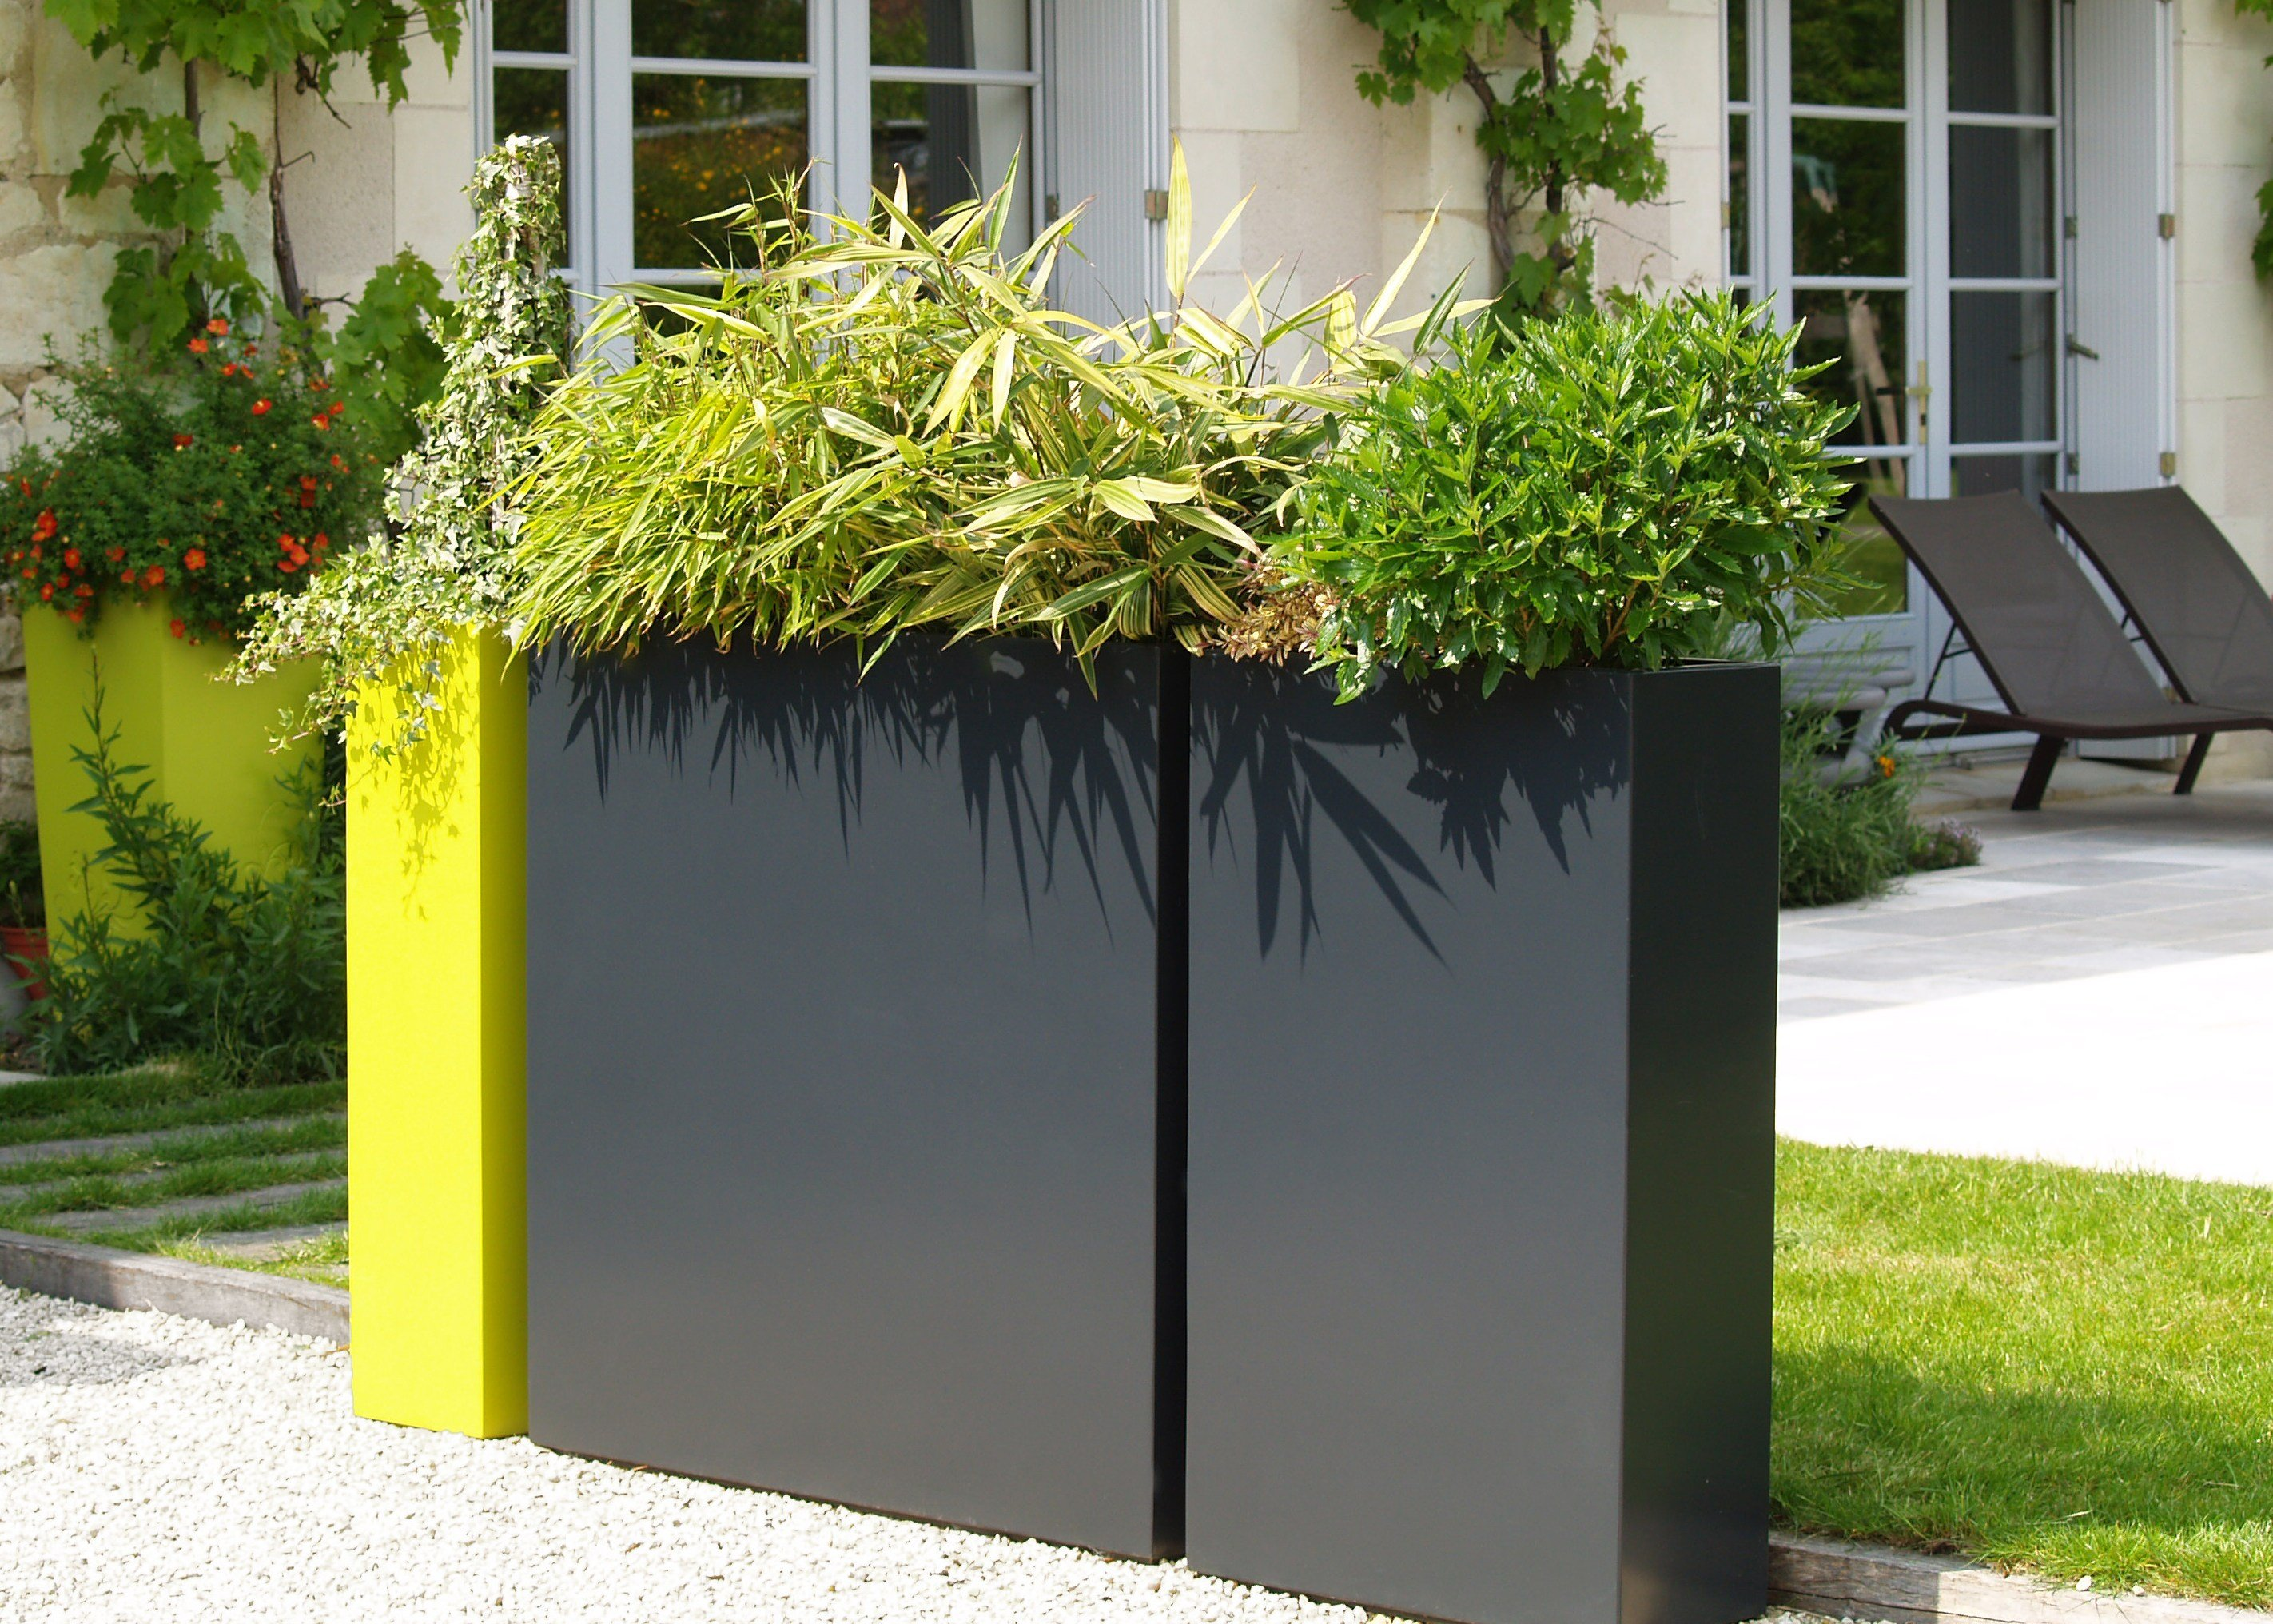 Fiber Cement Planter Irf By Image'in Design Fabien Joly Pflanzkubel Faserzement Balkon